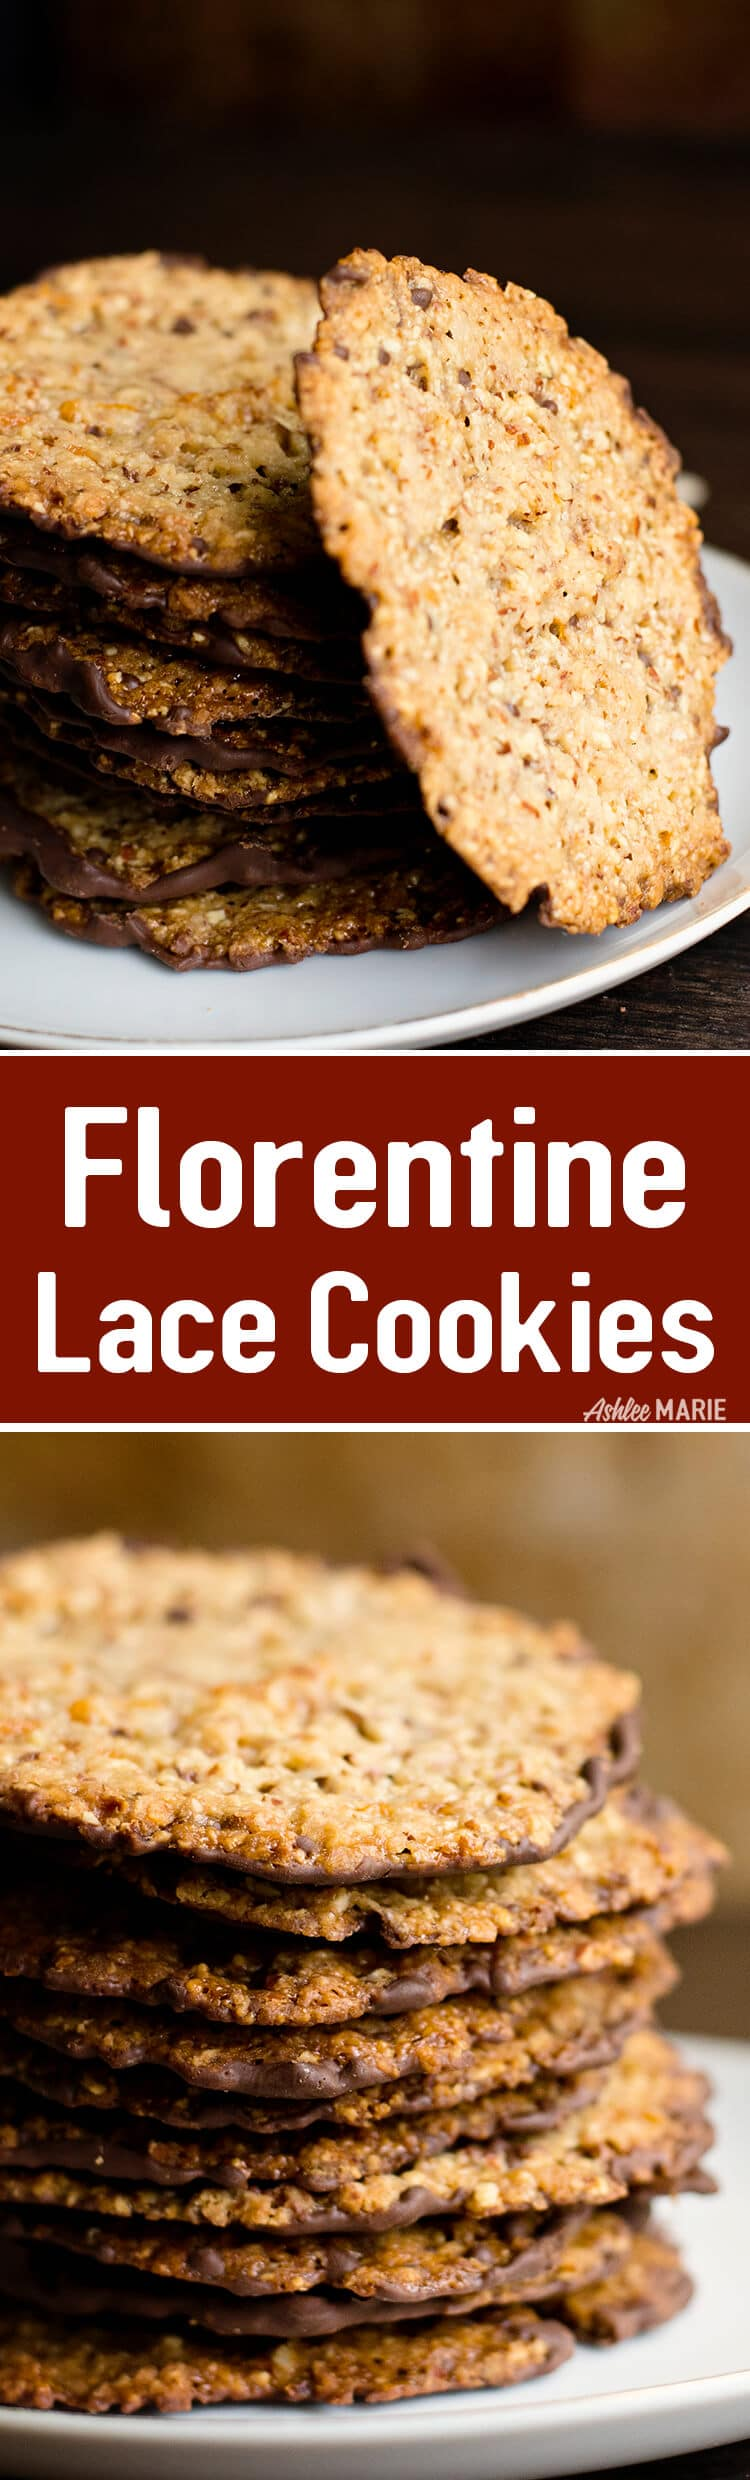 Italian Florentine Almond Lace Cookie Recipe | Ashlee ...